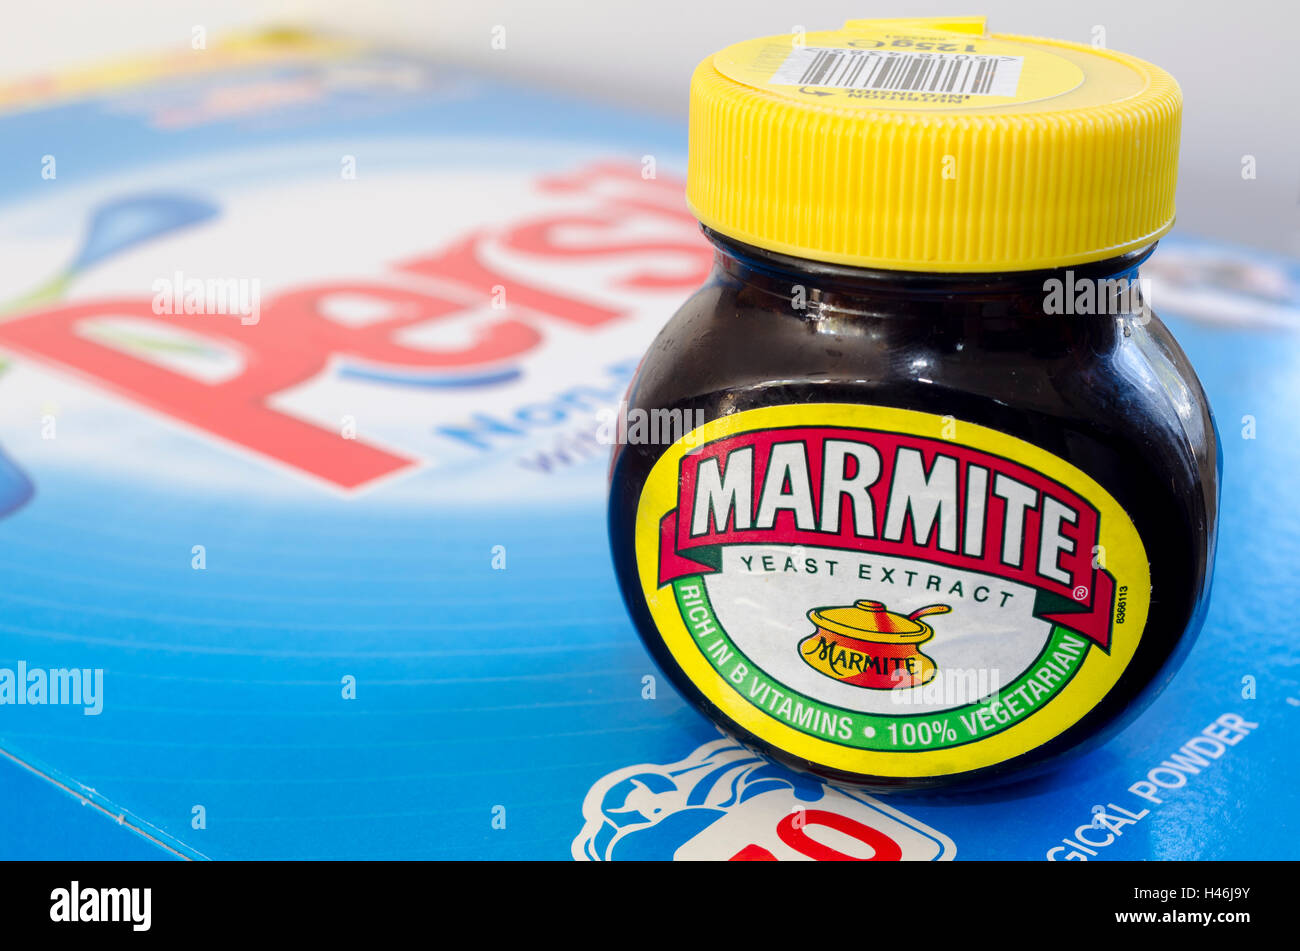 Marmite persil unilever lever brothers products - Stock Image